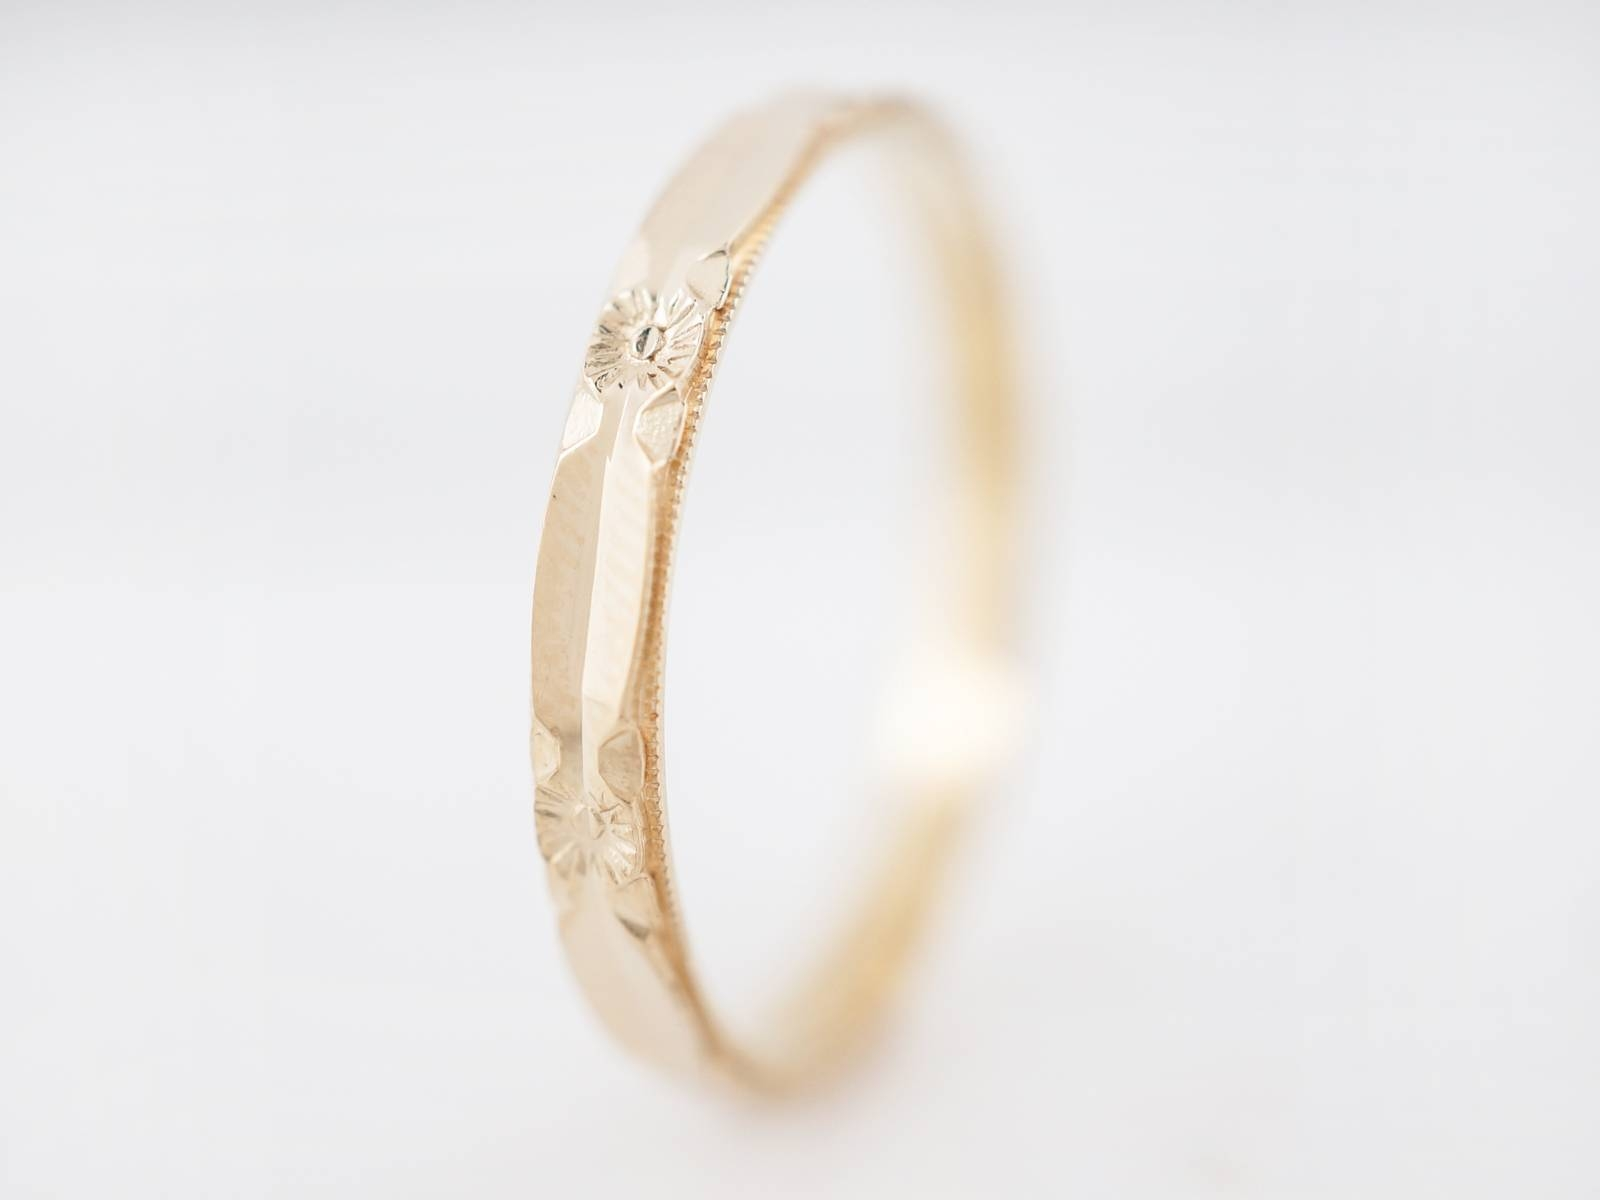 Antique Wedding Band Art Deco Orange Blossom In 14K Yellow Gold Regarding Orange Blossom Wedding Bands (View 8 of 15)